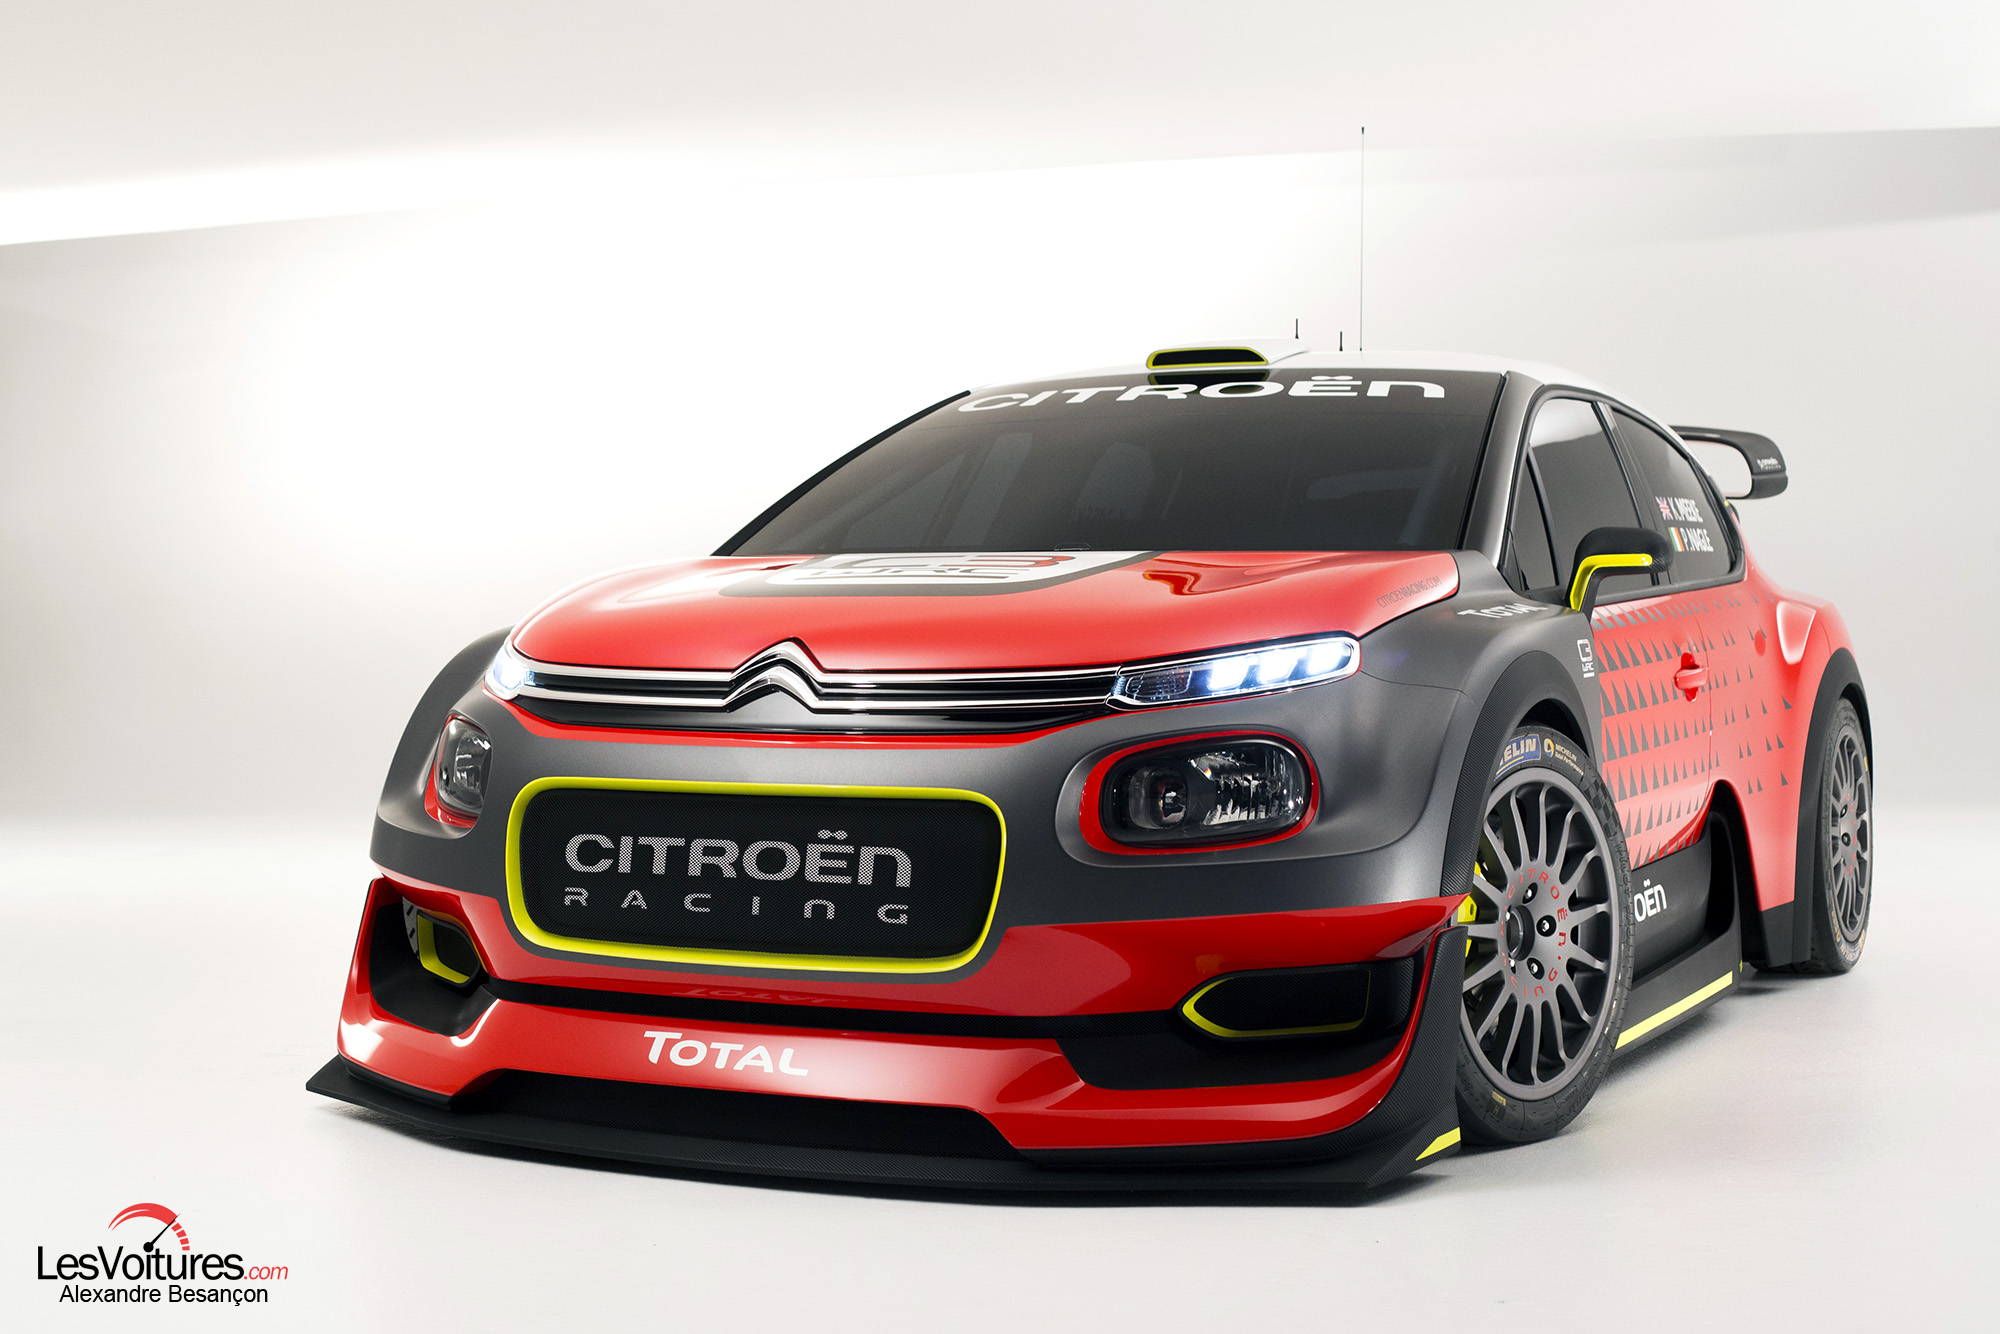 citroen c3 wrc concept 2017 10 les voitures. Black Bedroom Furniture Sets. Home Design Ideas